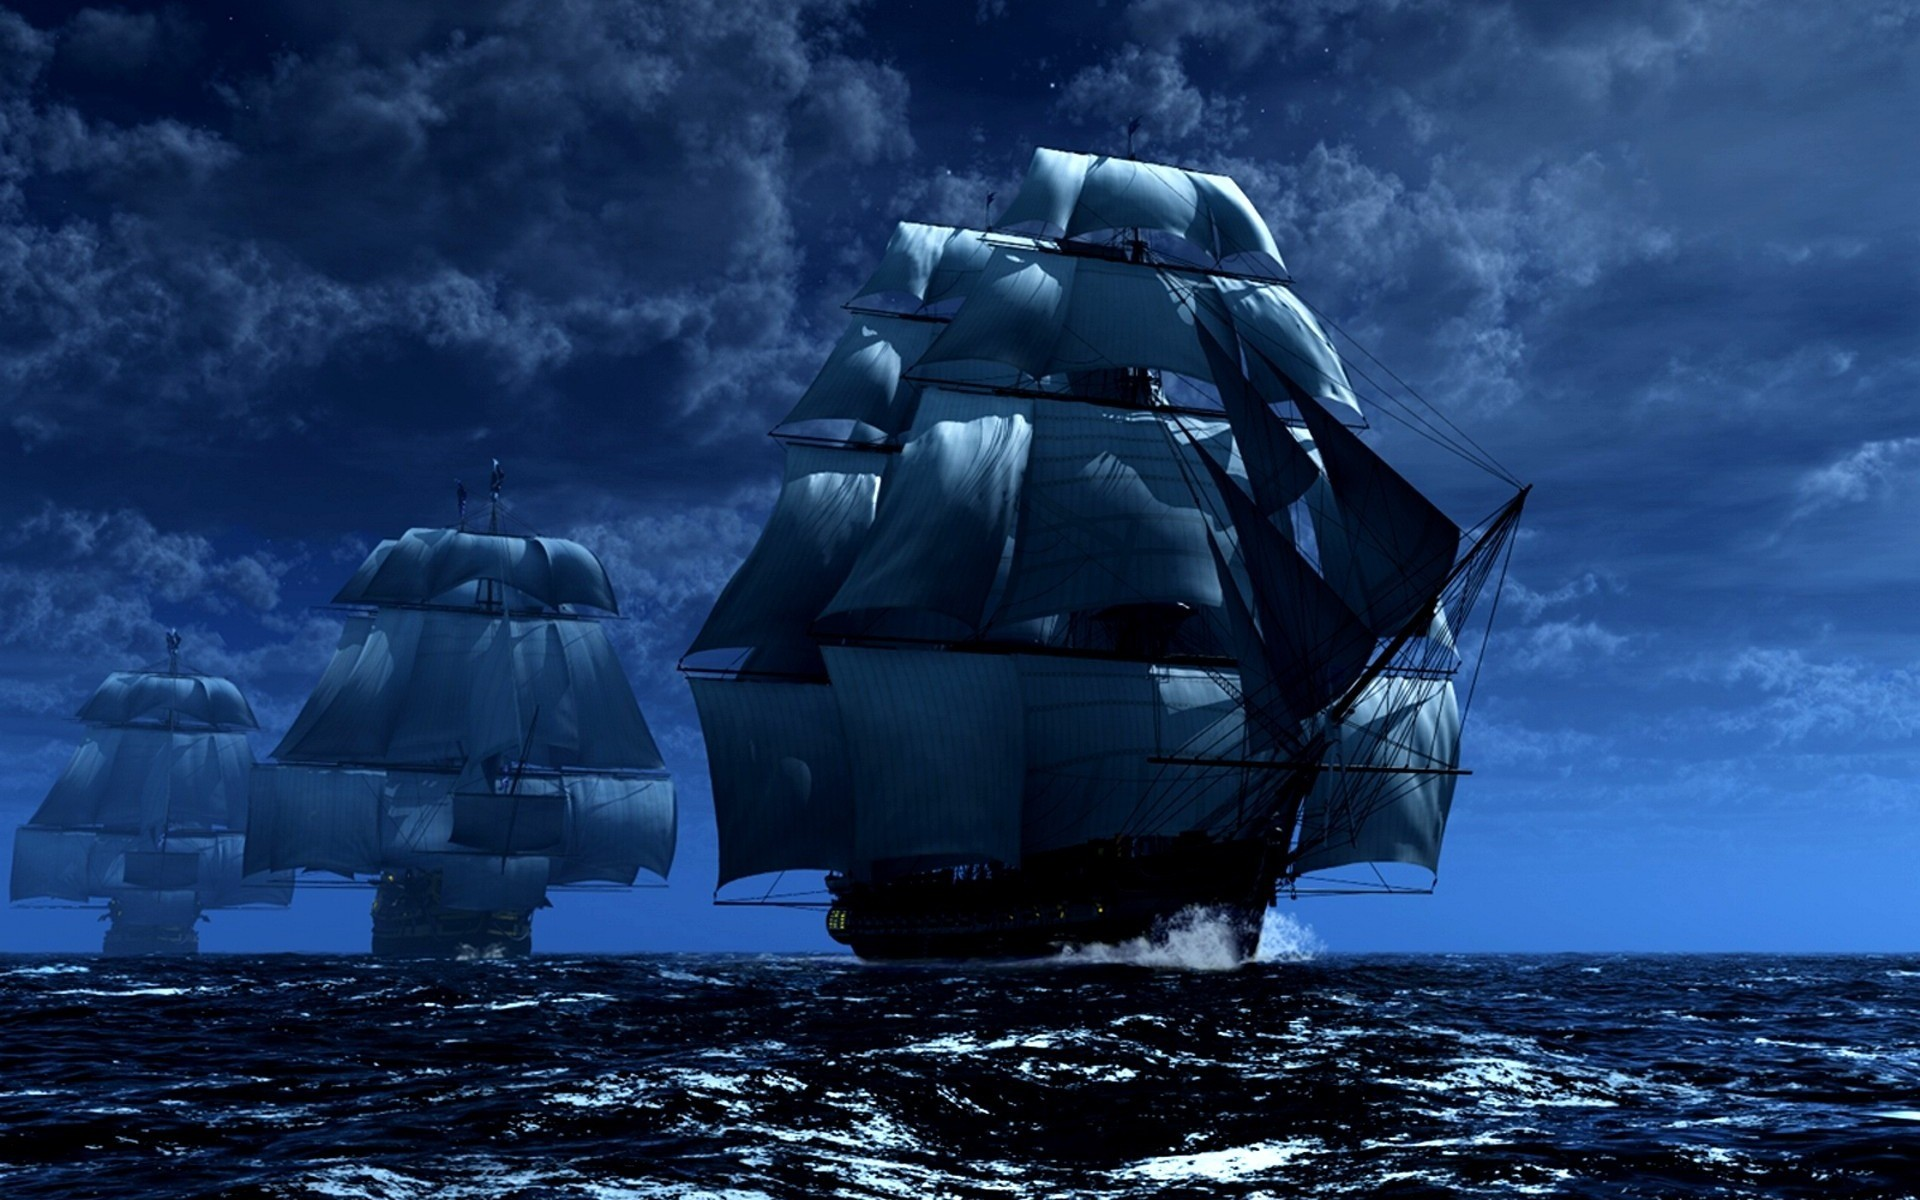 The sailing ships wallpapers and images – wallpapers, pictures, photos